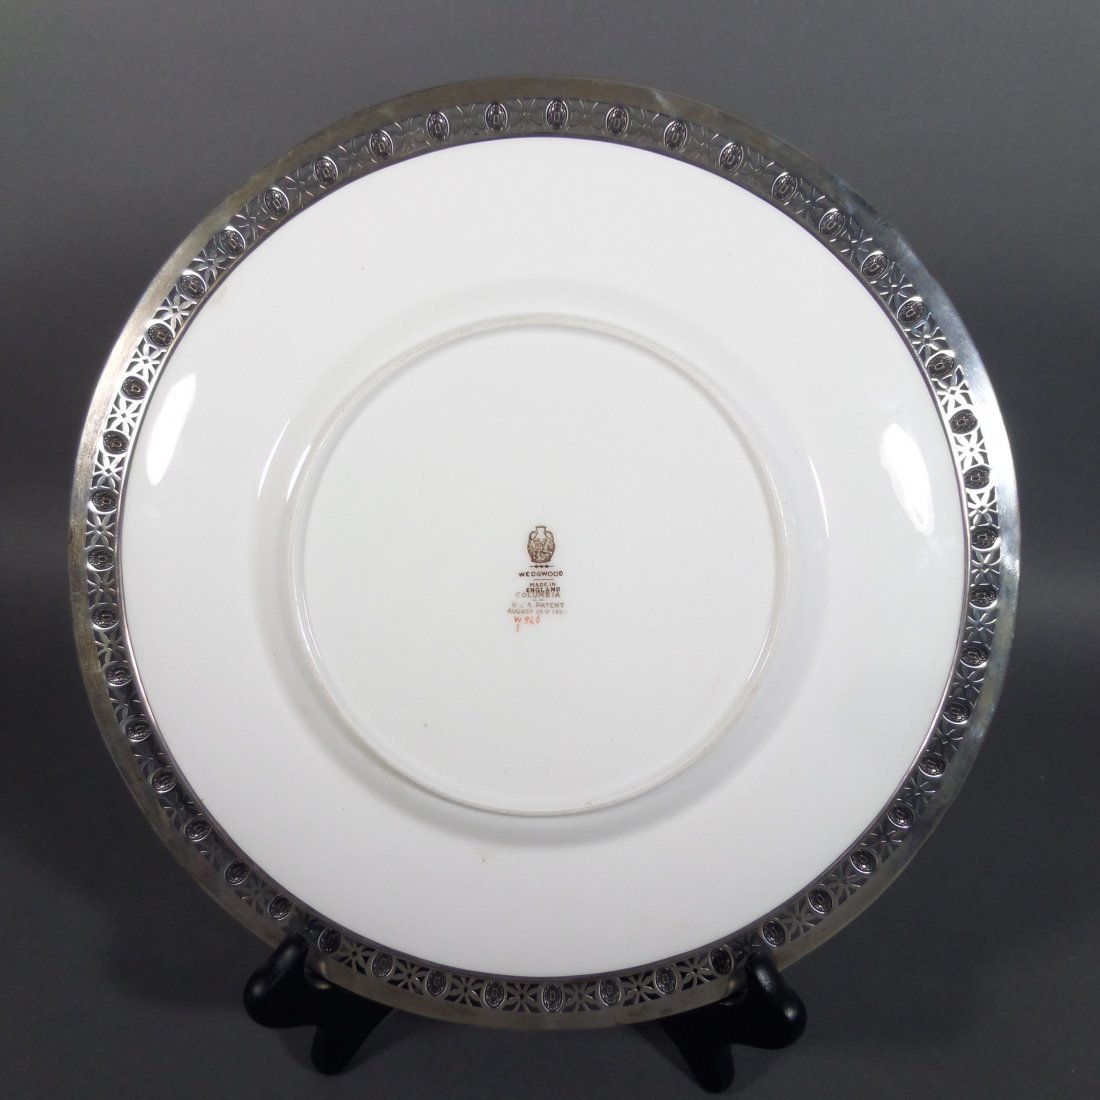 2 Sterling Silver Rimmed WEDGWOOD Chargers - 4